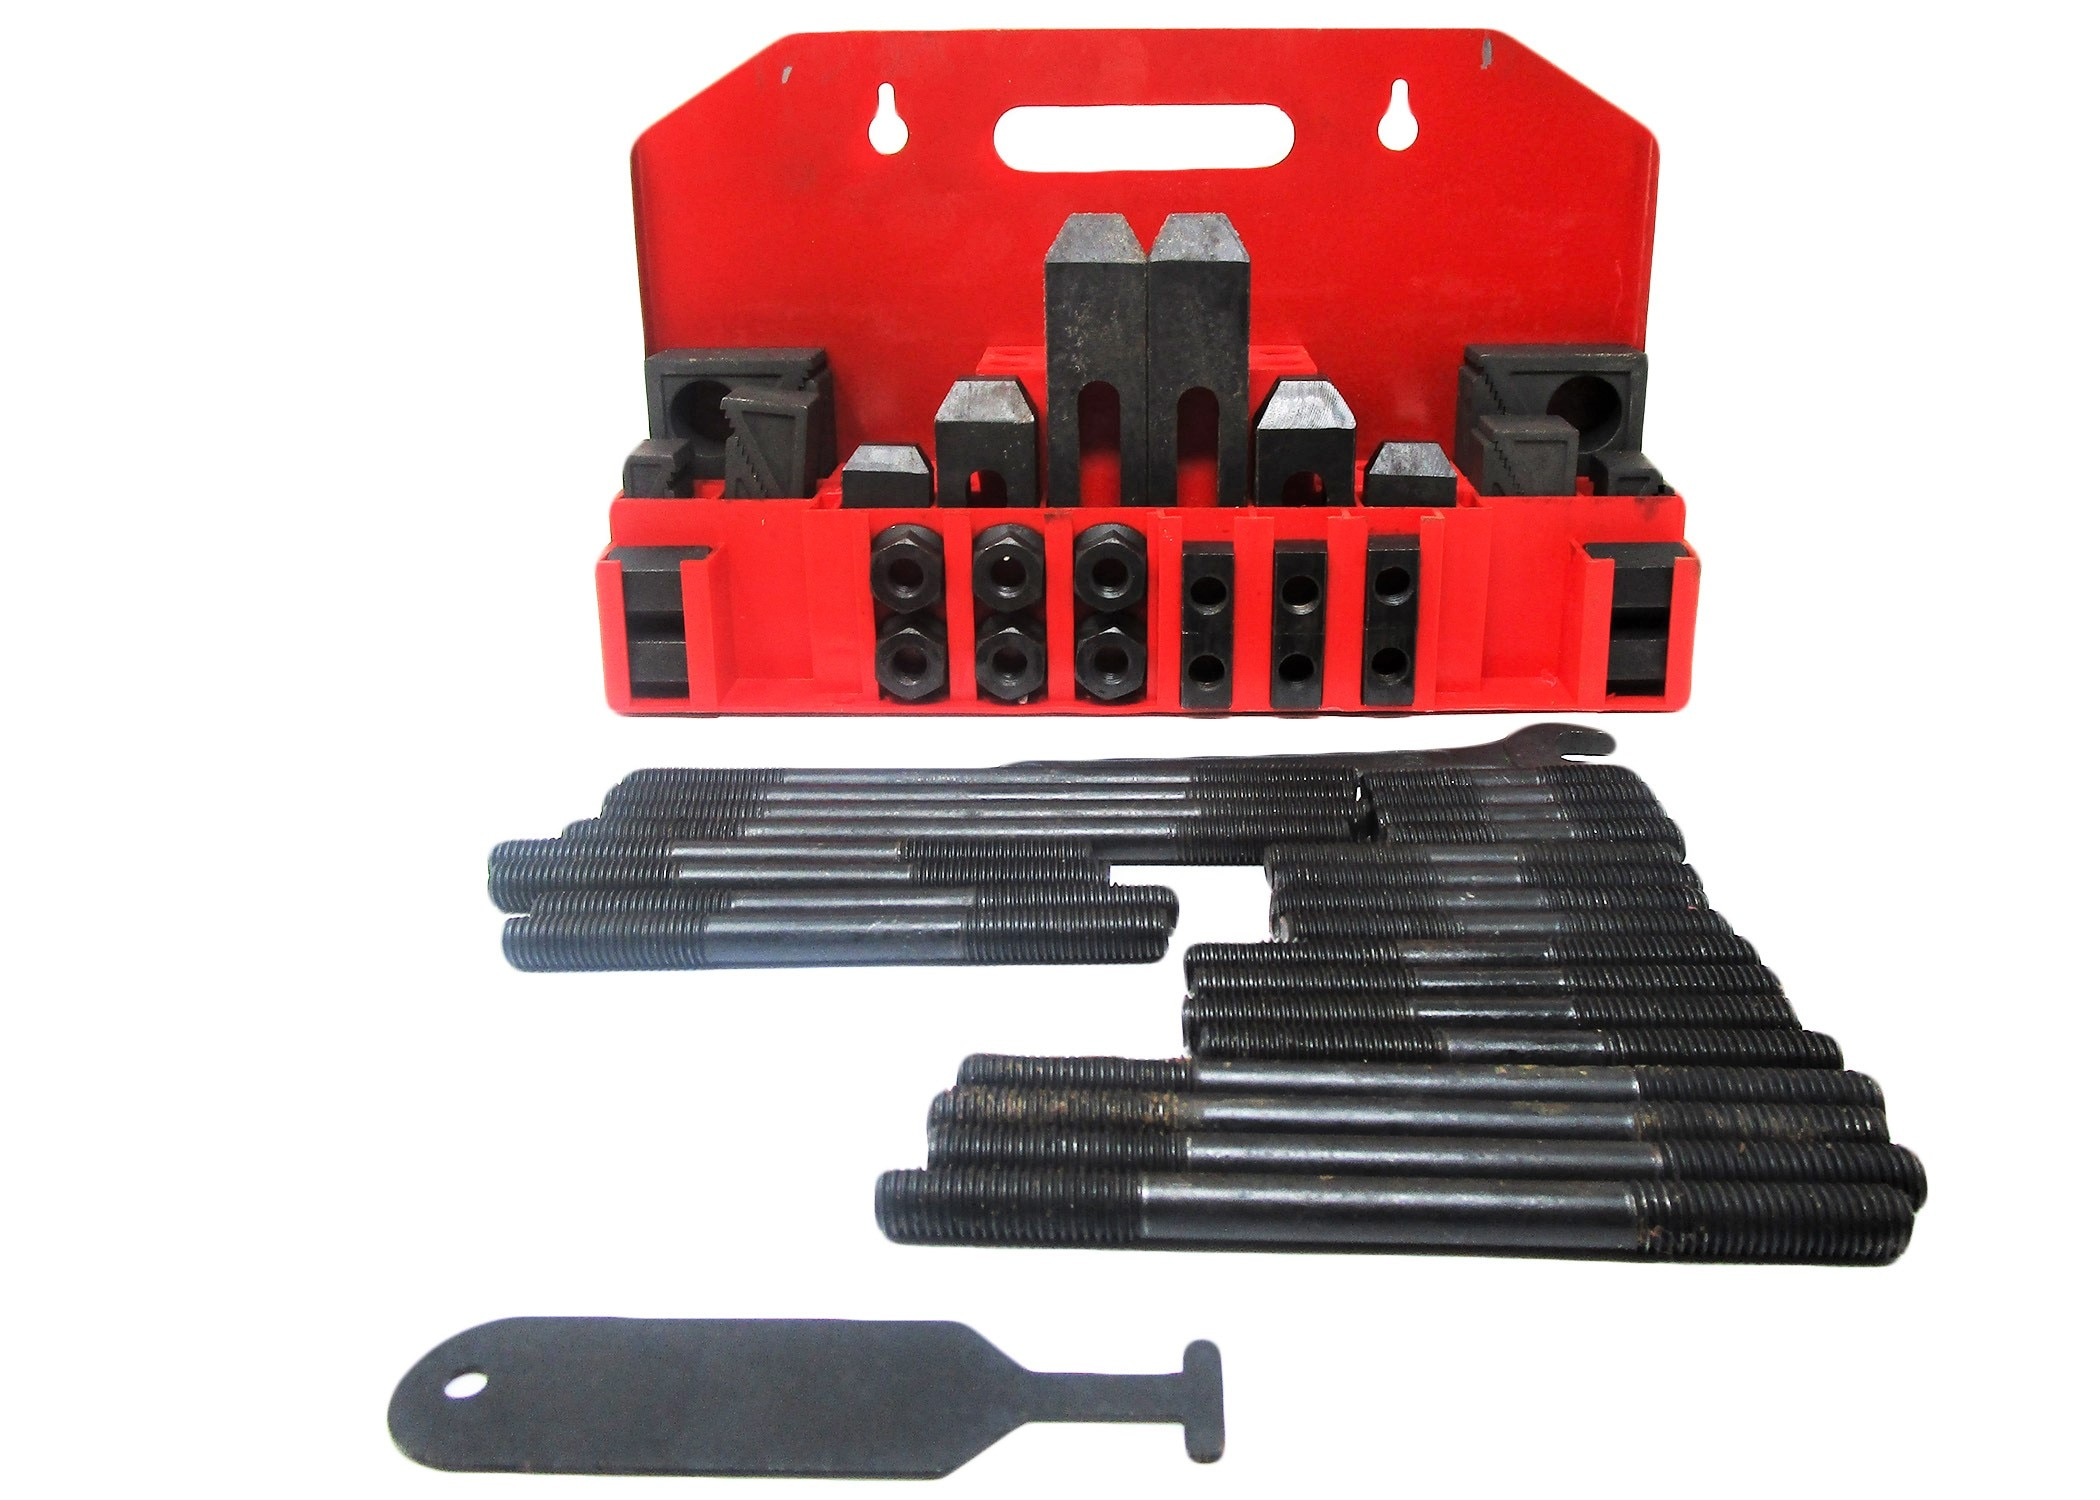 JET —  52 Piece CK12 Clamping Kit for 5/8 in T-Slots